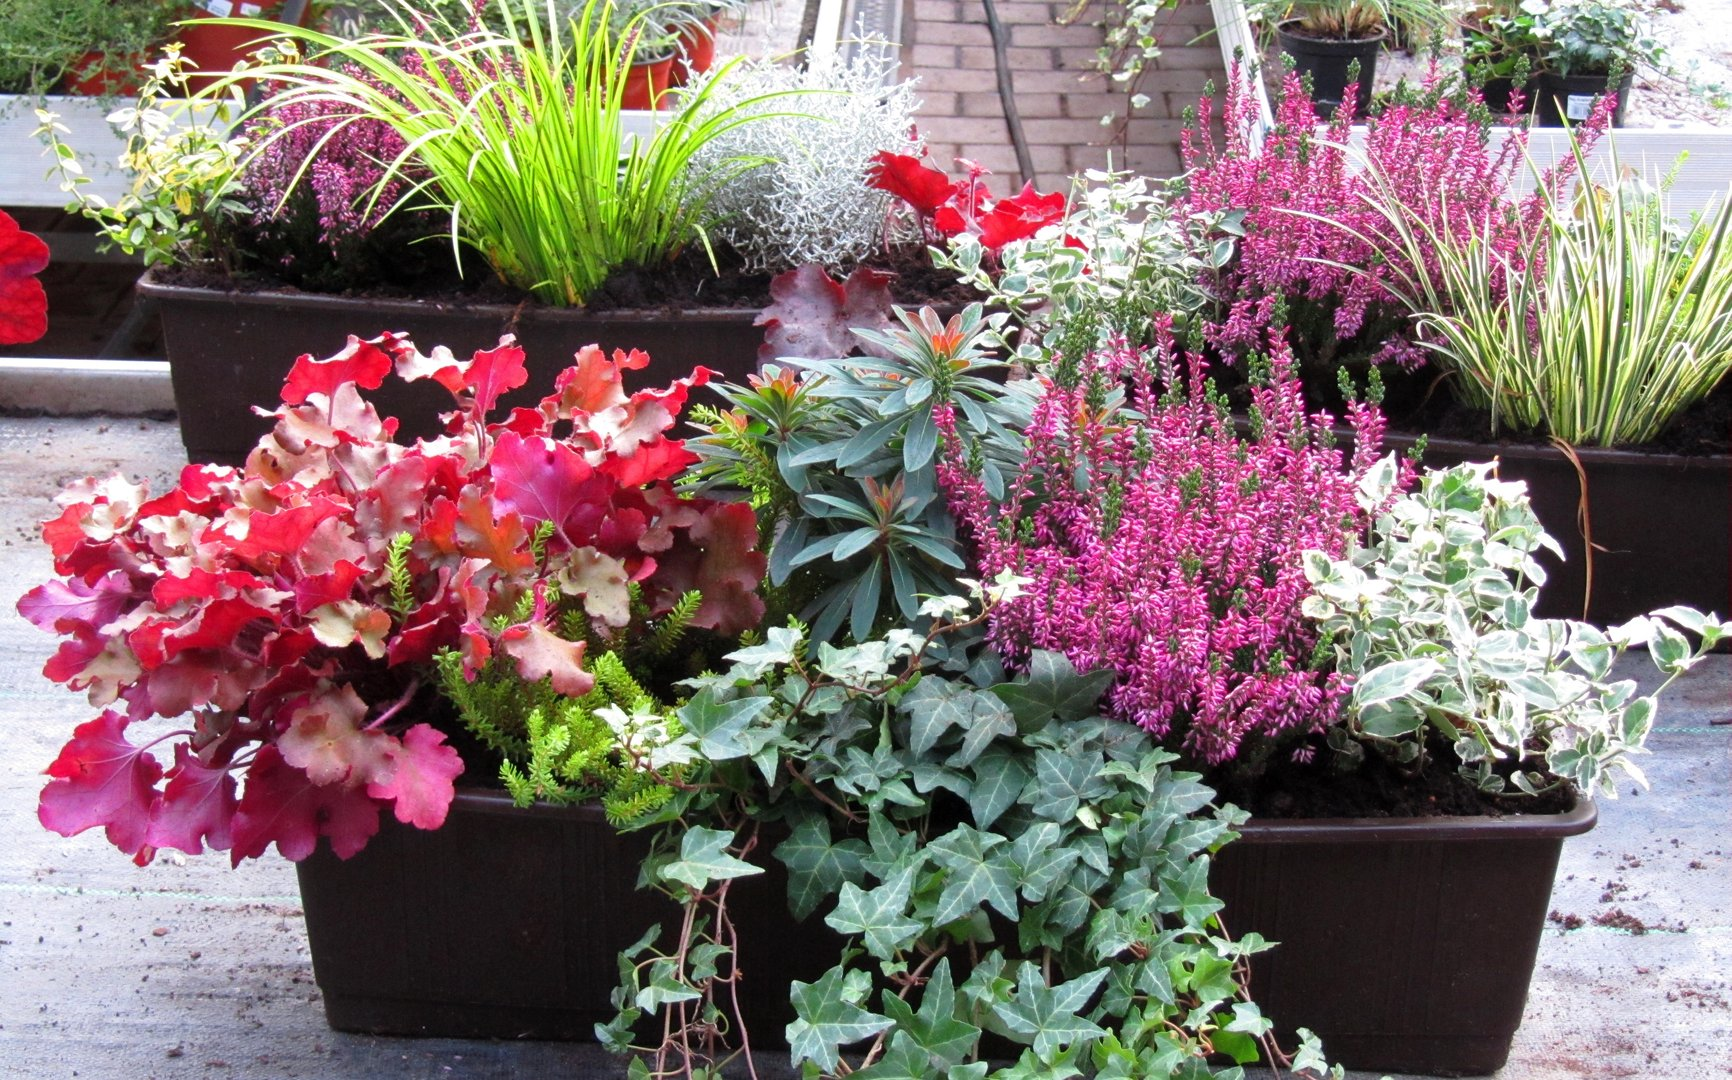 Balkon Blumen Hängend Balkon Blumen Hängend Fuchsia Plant Care How To Grow And